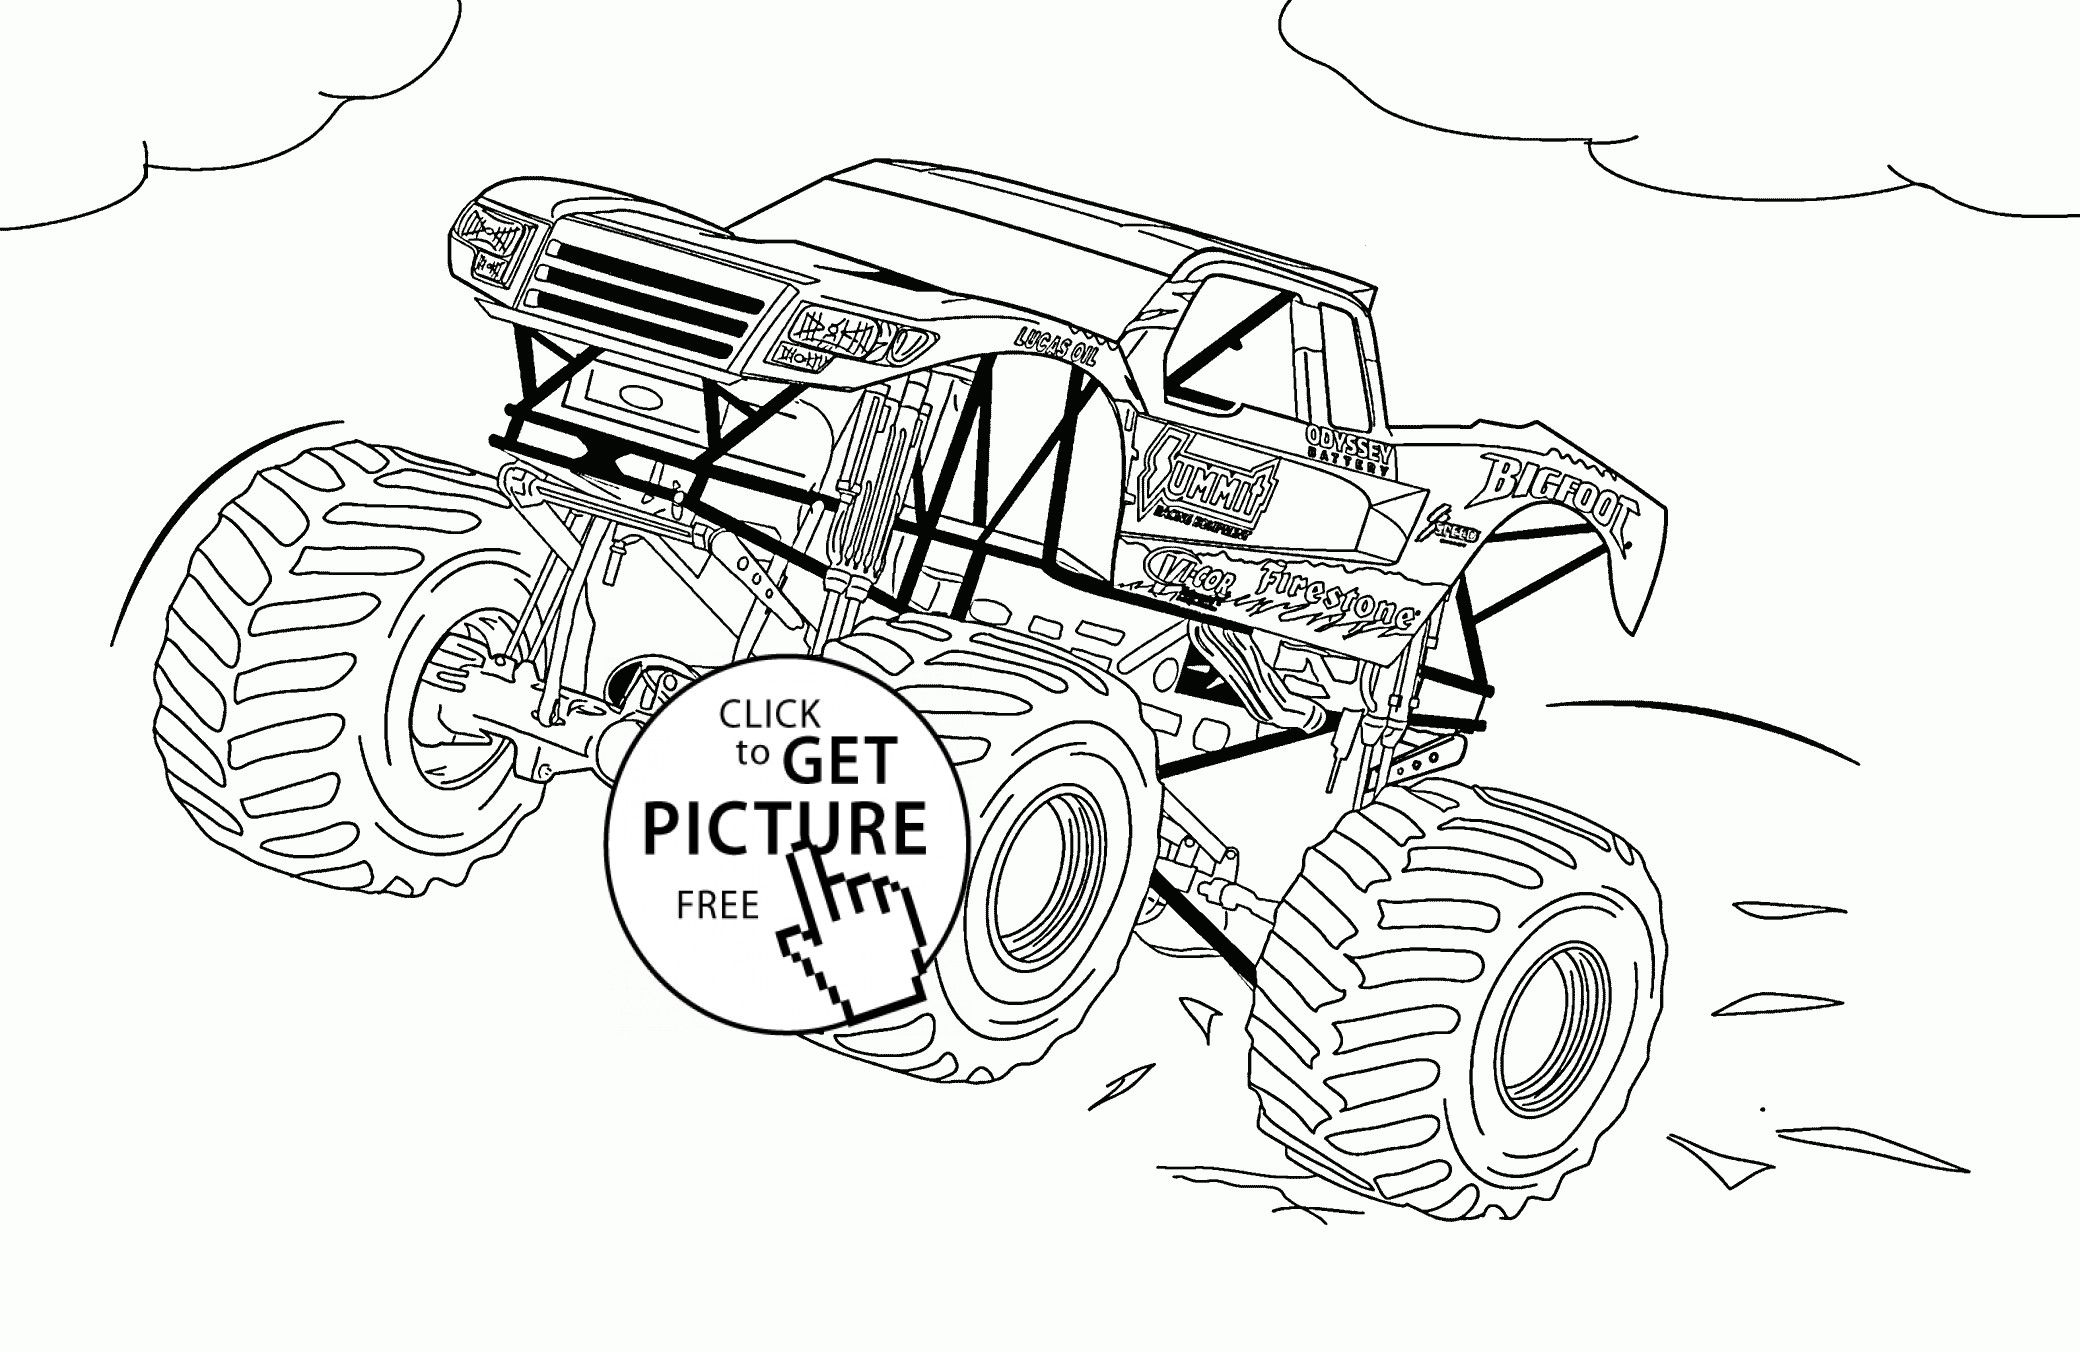 Monster Truck Coloring Pages Awesome Bigfoot Monster Truck Coloring Page For Kids Tran Monster Truck Coloring Pages Truck Coloring Pages Monster Coloring Pages